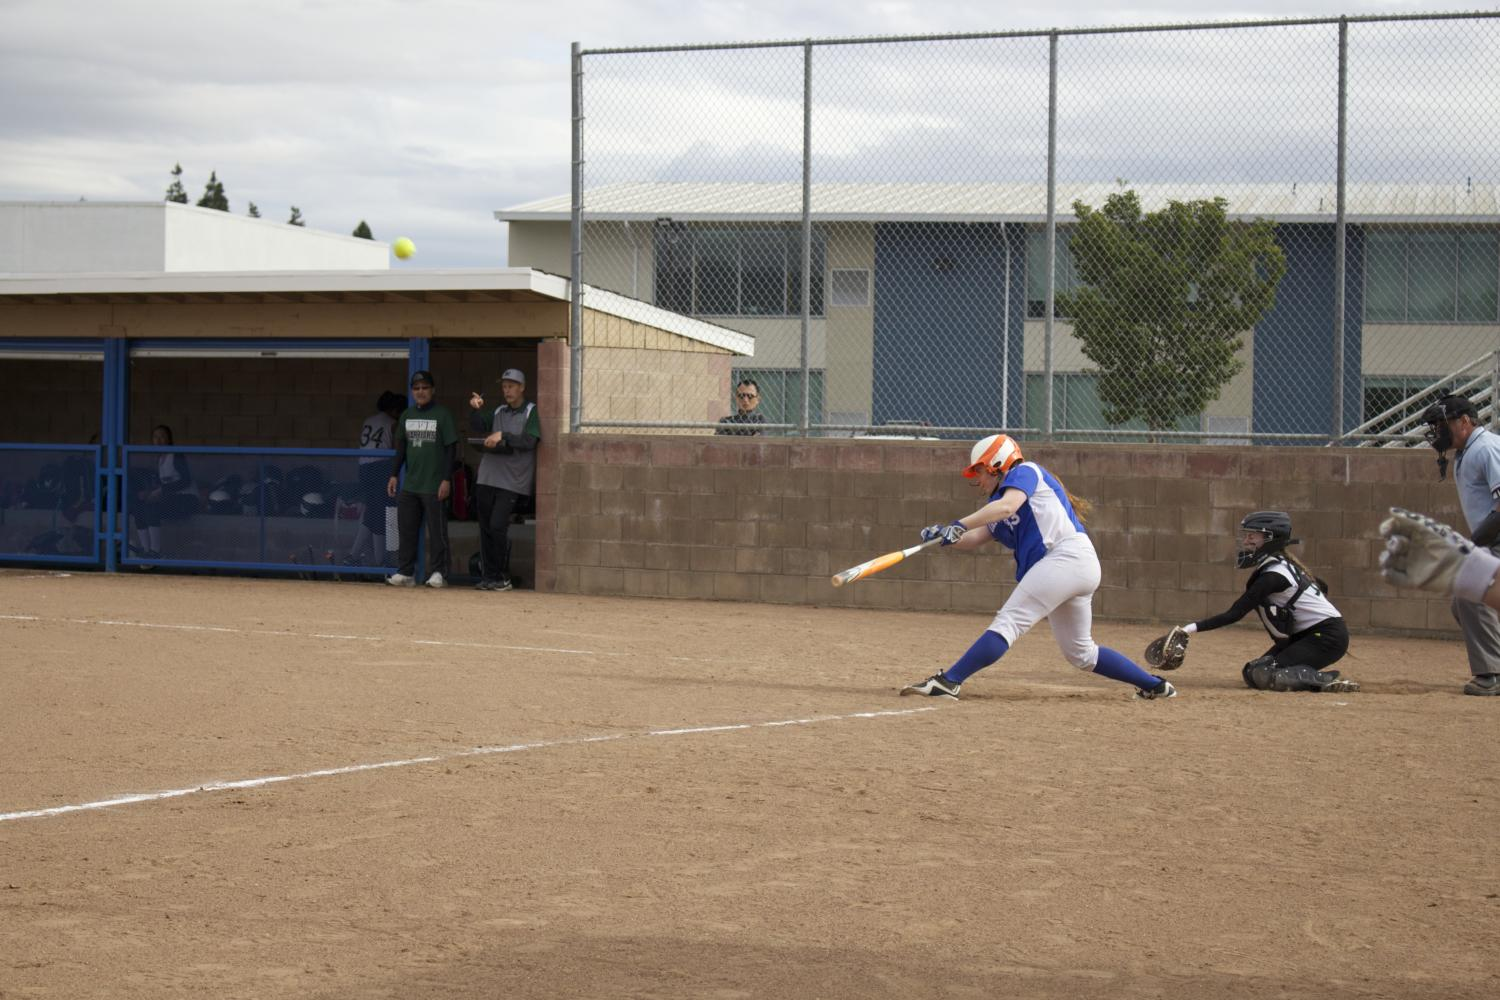 Courtney Sanders (11) hits the ball and scores the only home run of the game.